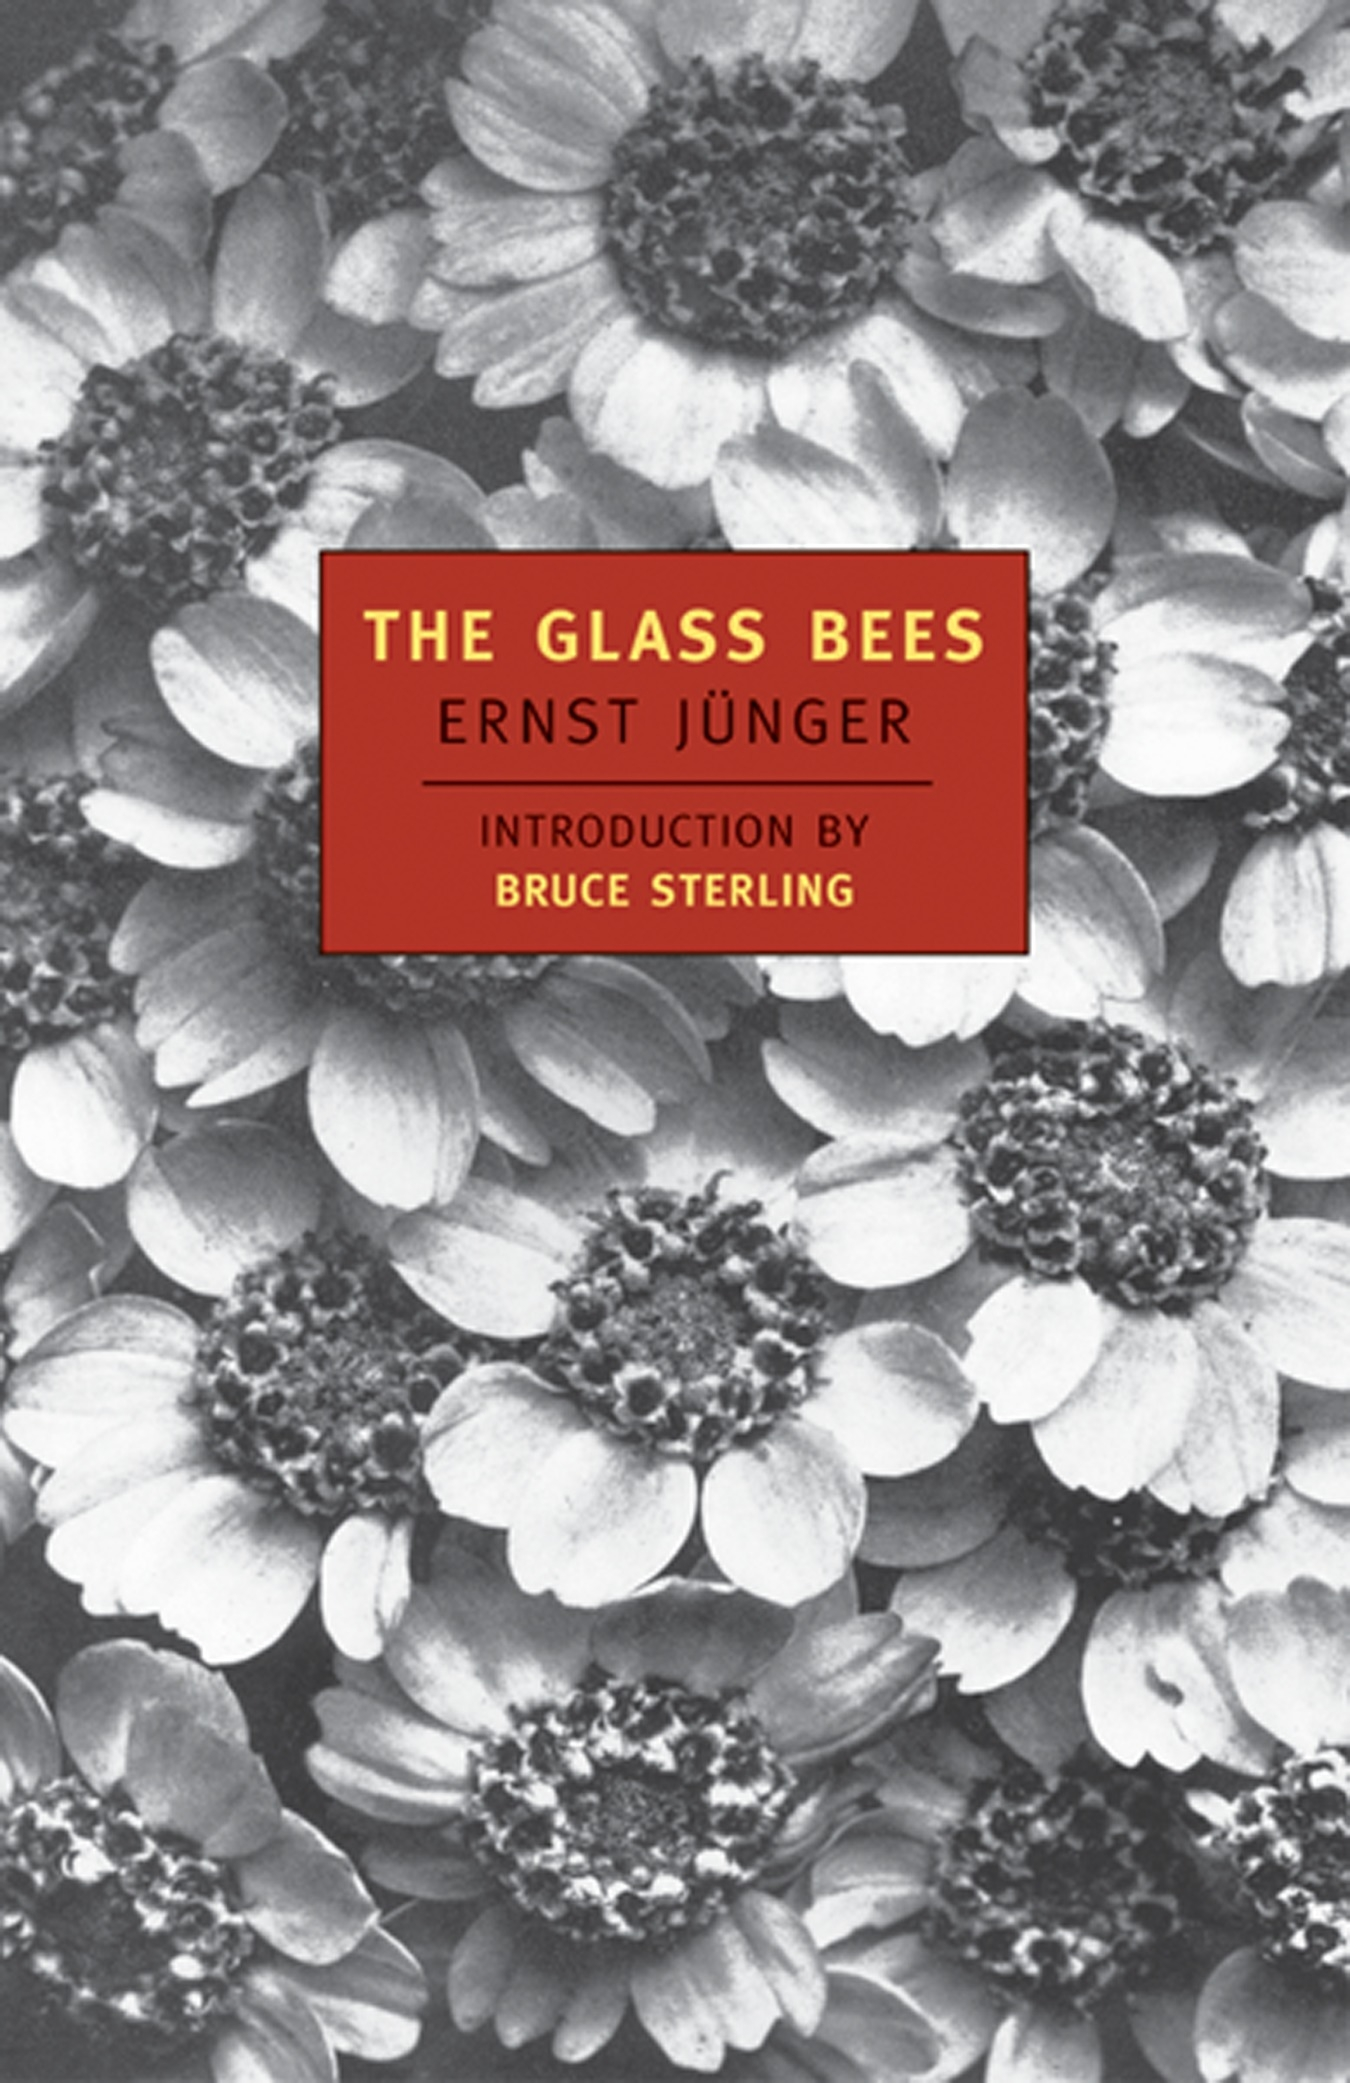 The Glass Bees by Ernst Junger, ISBN: 9780940322554